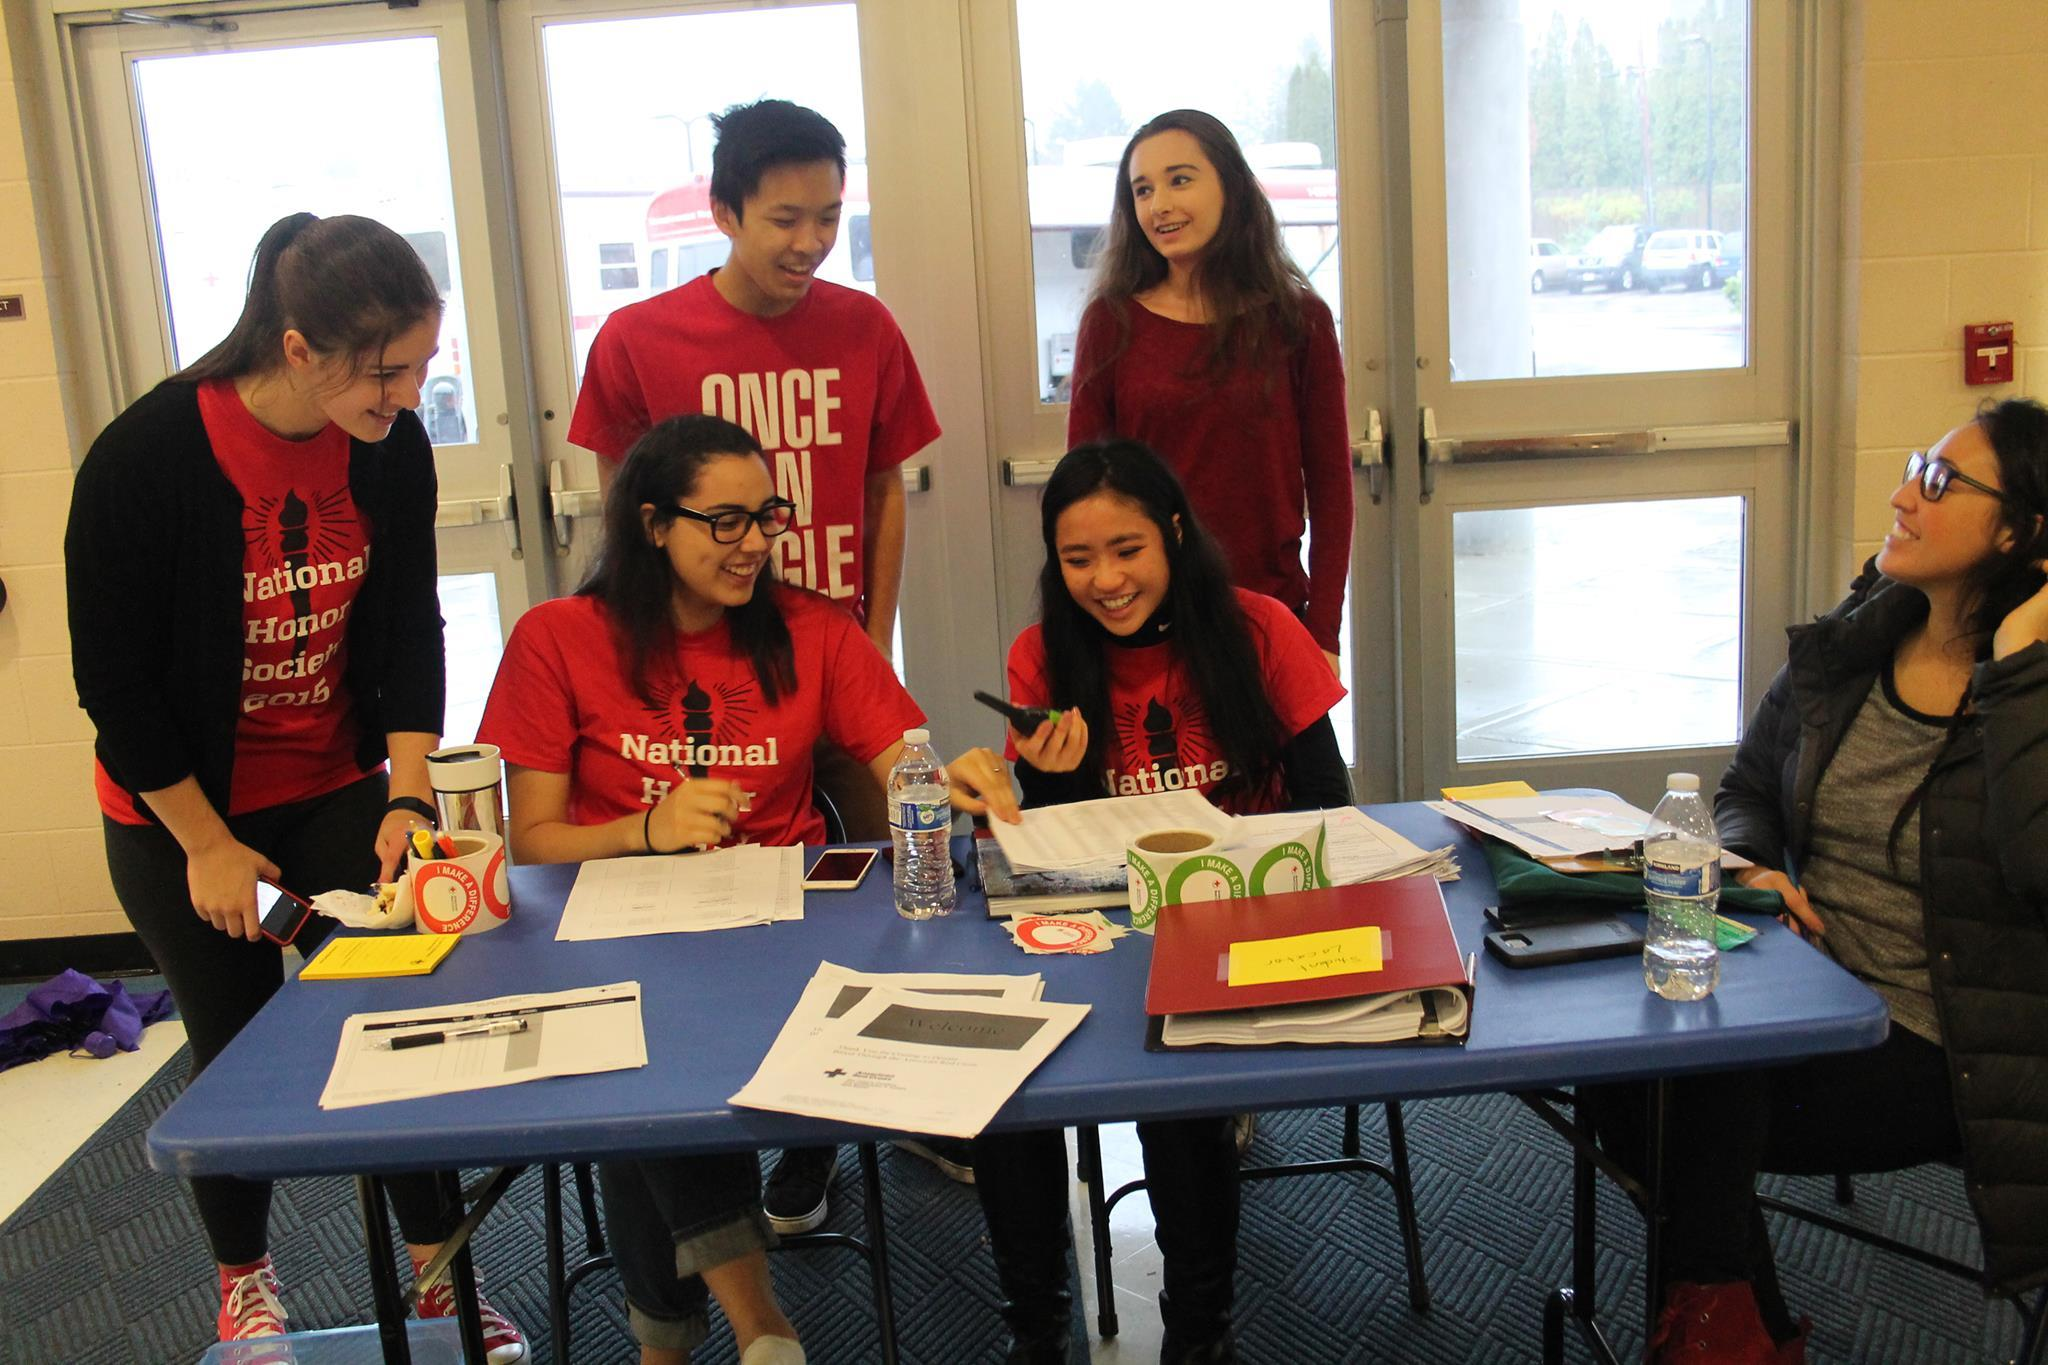 NHS Officers Laura Popescu, Monica Angelecio, and Linh Tran having fun signing students up.